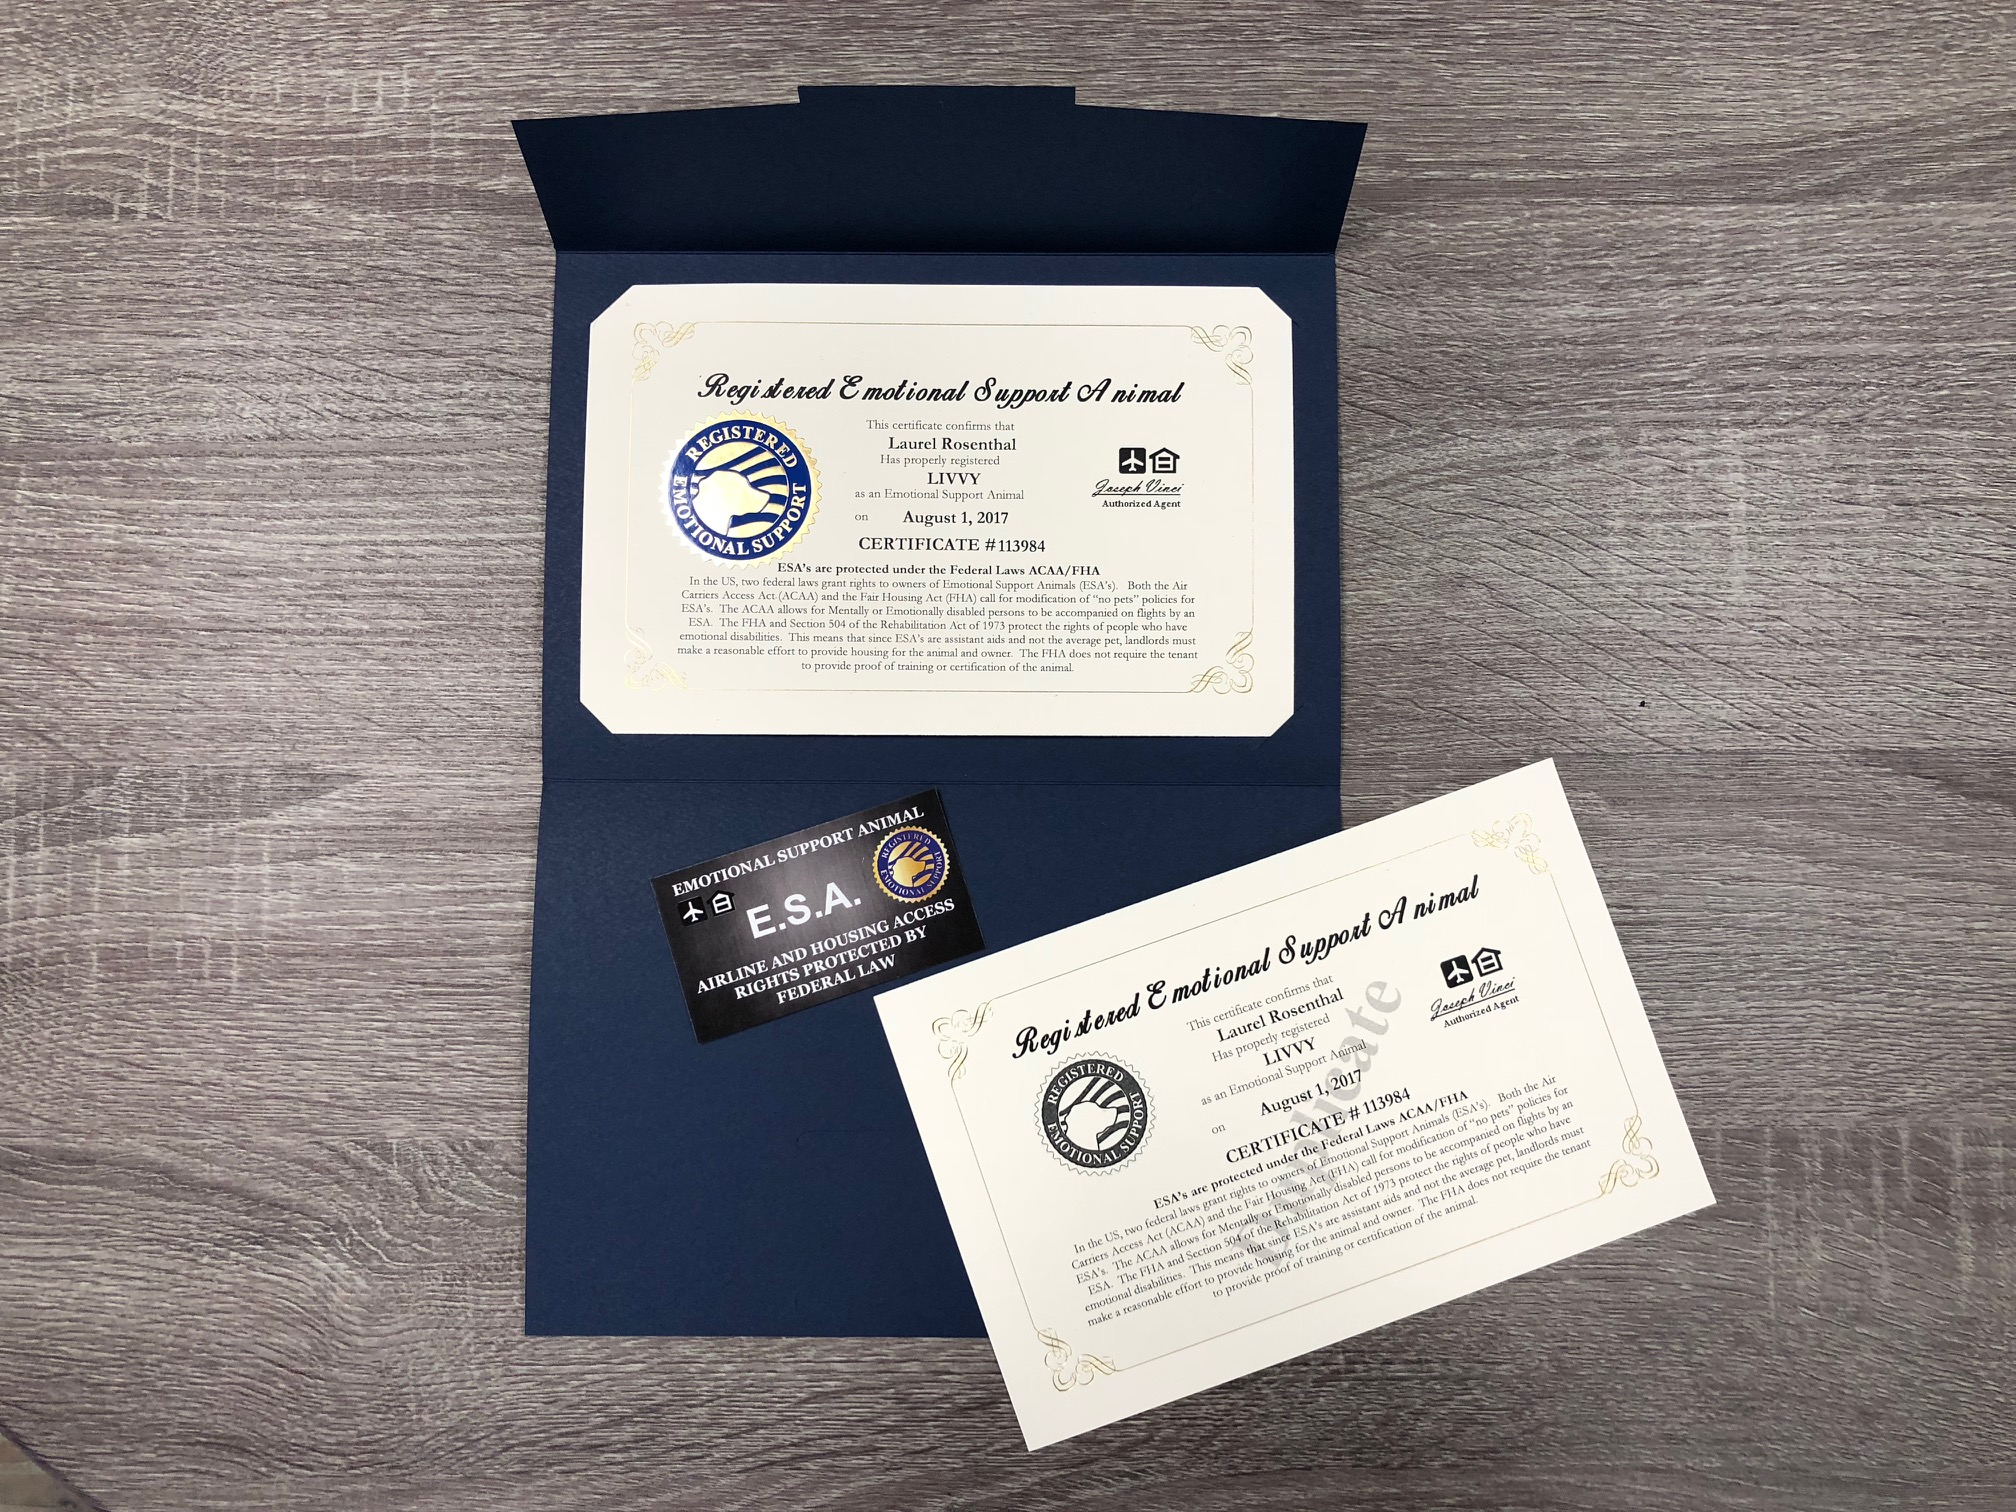 Image of: America Working Service Dog Brand Official Emotional Support Animal Esa Certificate Customized With You And Your Pets Information And Certificate Date Free Kind Of Letters Working Service Dog Brand Official Emotional Support Animal Esa